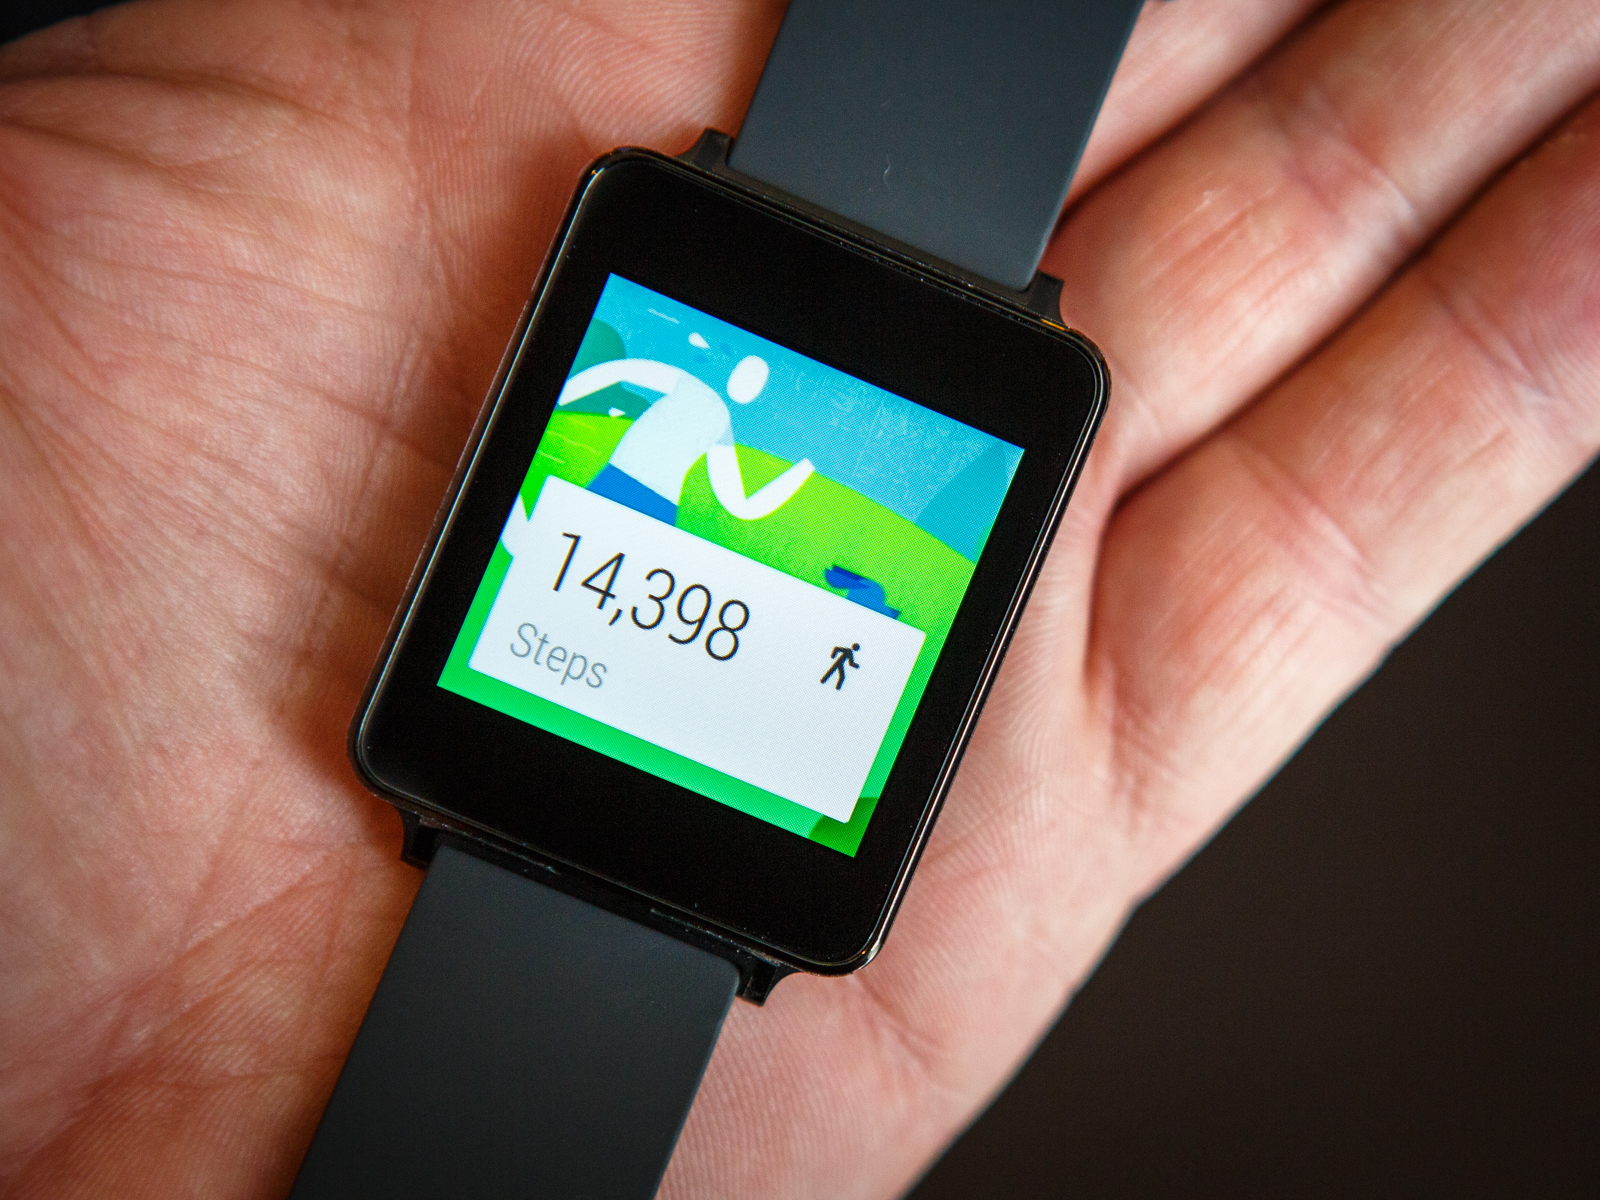 lg-g-watch-android-wear-0818-003.jpg